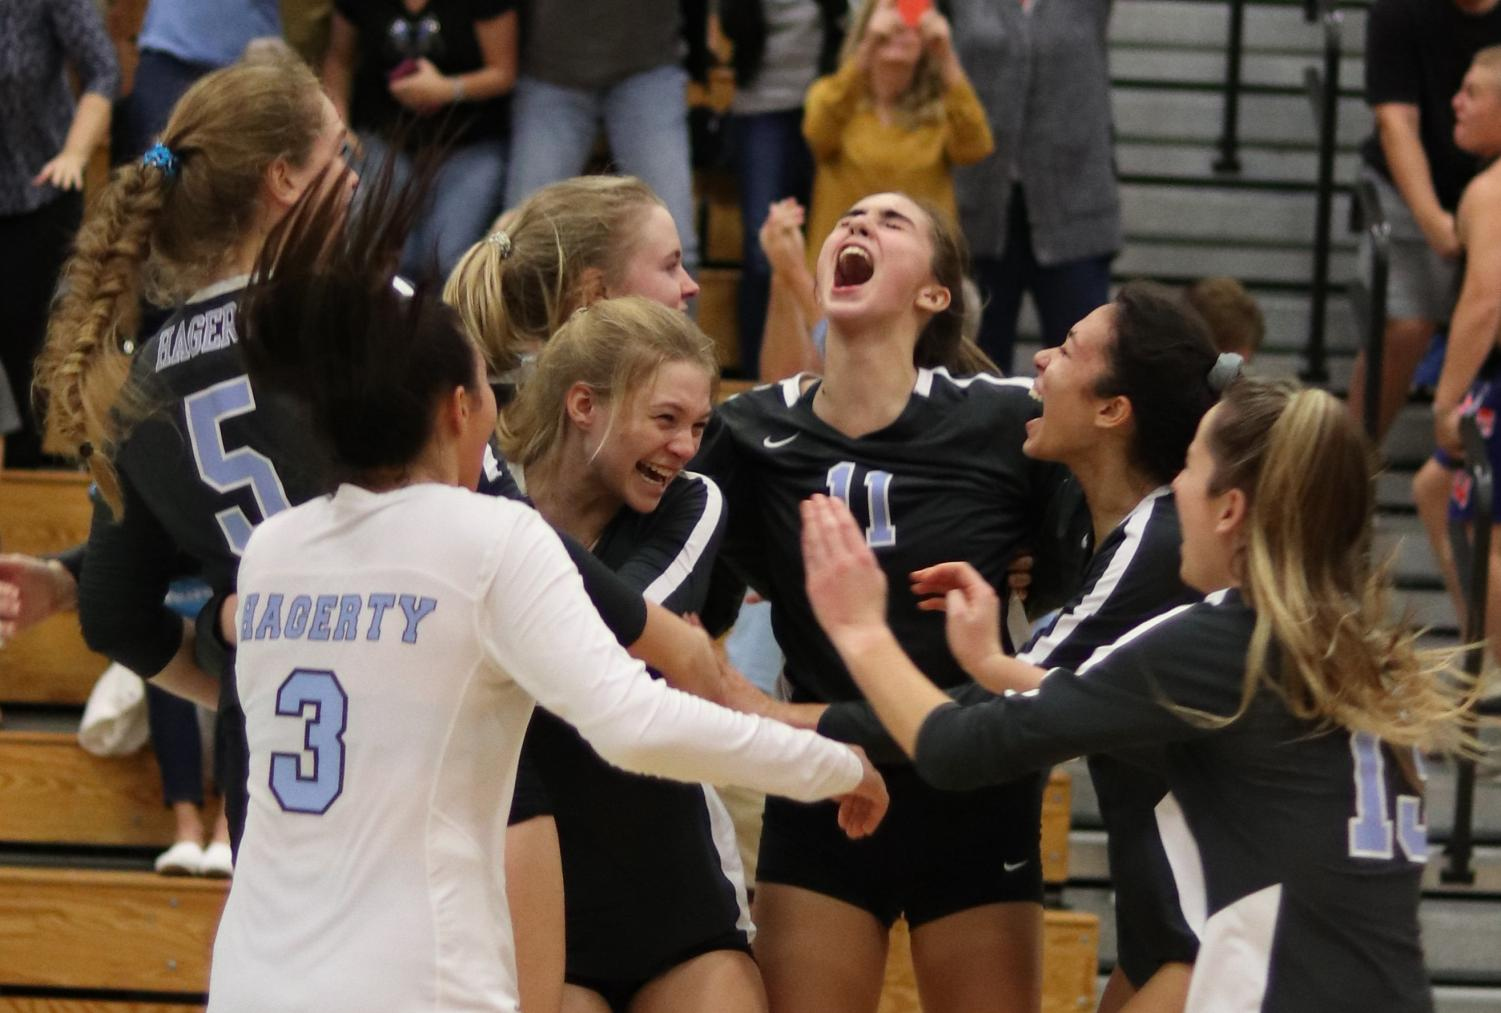 The varsity girls volleyball team celebrates after beating Lyman 3-2. The team will play Saturday, Nov. 9 against Plant High for a chance to get to the state final.